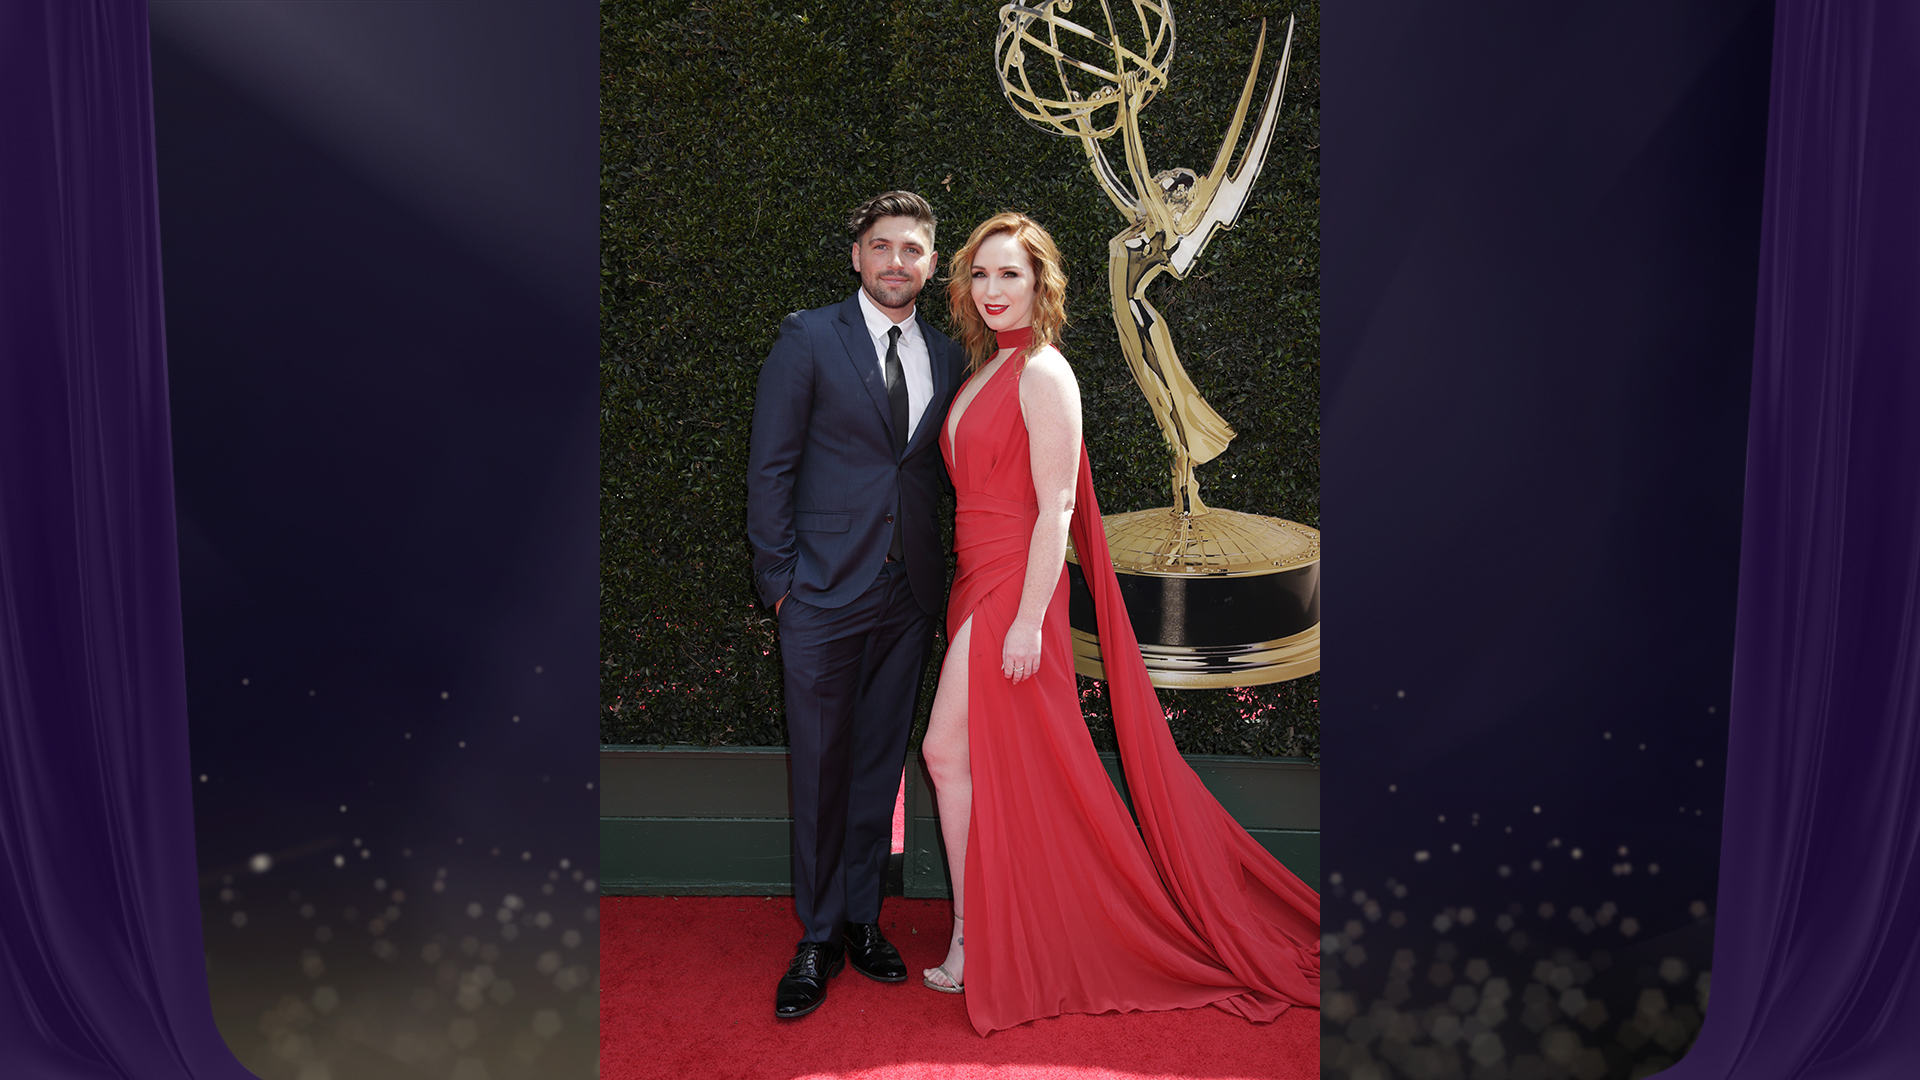 The Young and the Restless costars Robert Adamson and Camryn Grimes pose together before heading into the 2018 Daytime Emmy Awards.